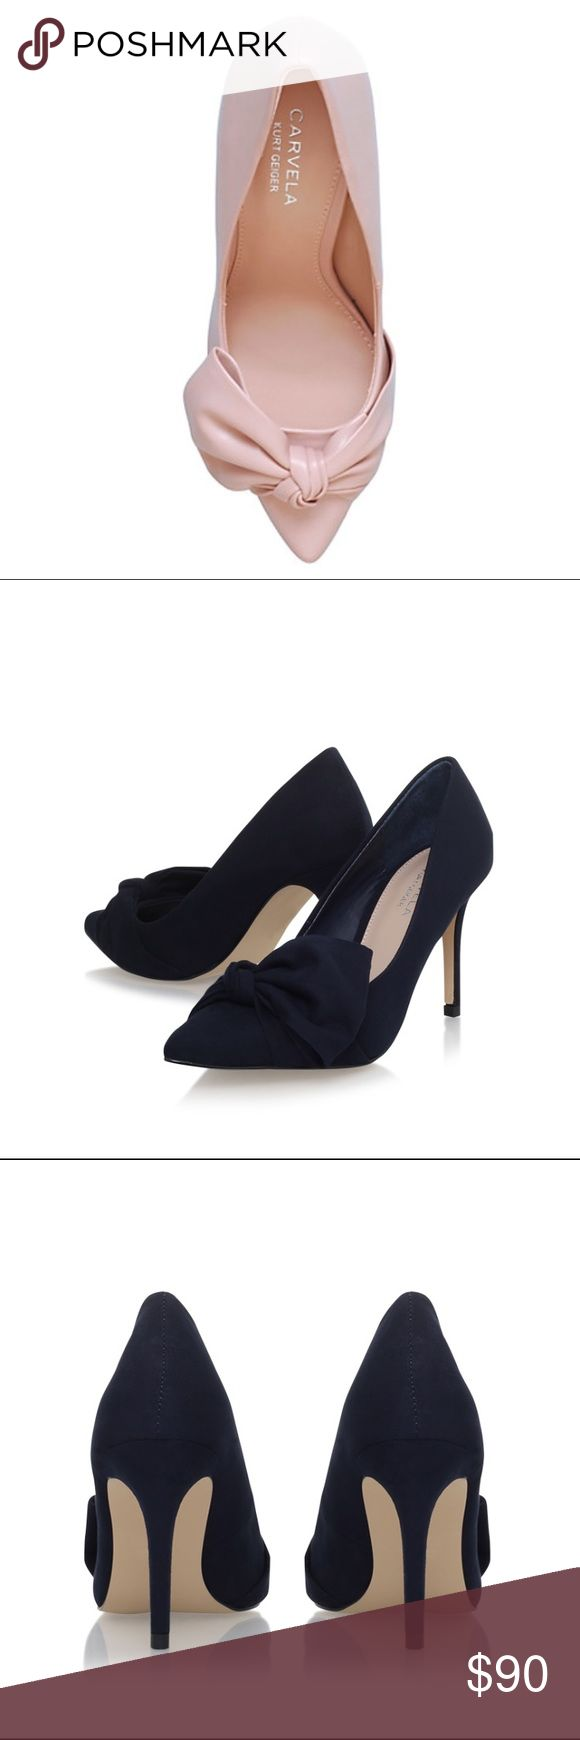 """Navy Carvela Kurt Geiger Pump Still in their box. Bought on the Kurt Geiger website but they are too small for me. The material is suede and the heel height is 8.5cm ( 3.35"""") Carvela Kurt Geiger  Shoes Heels"""